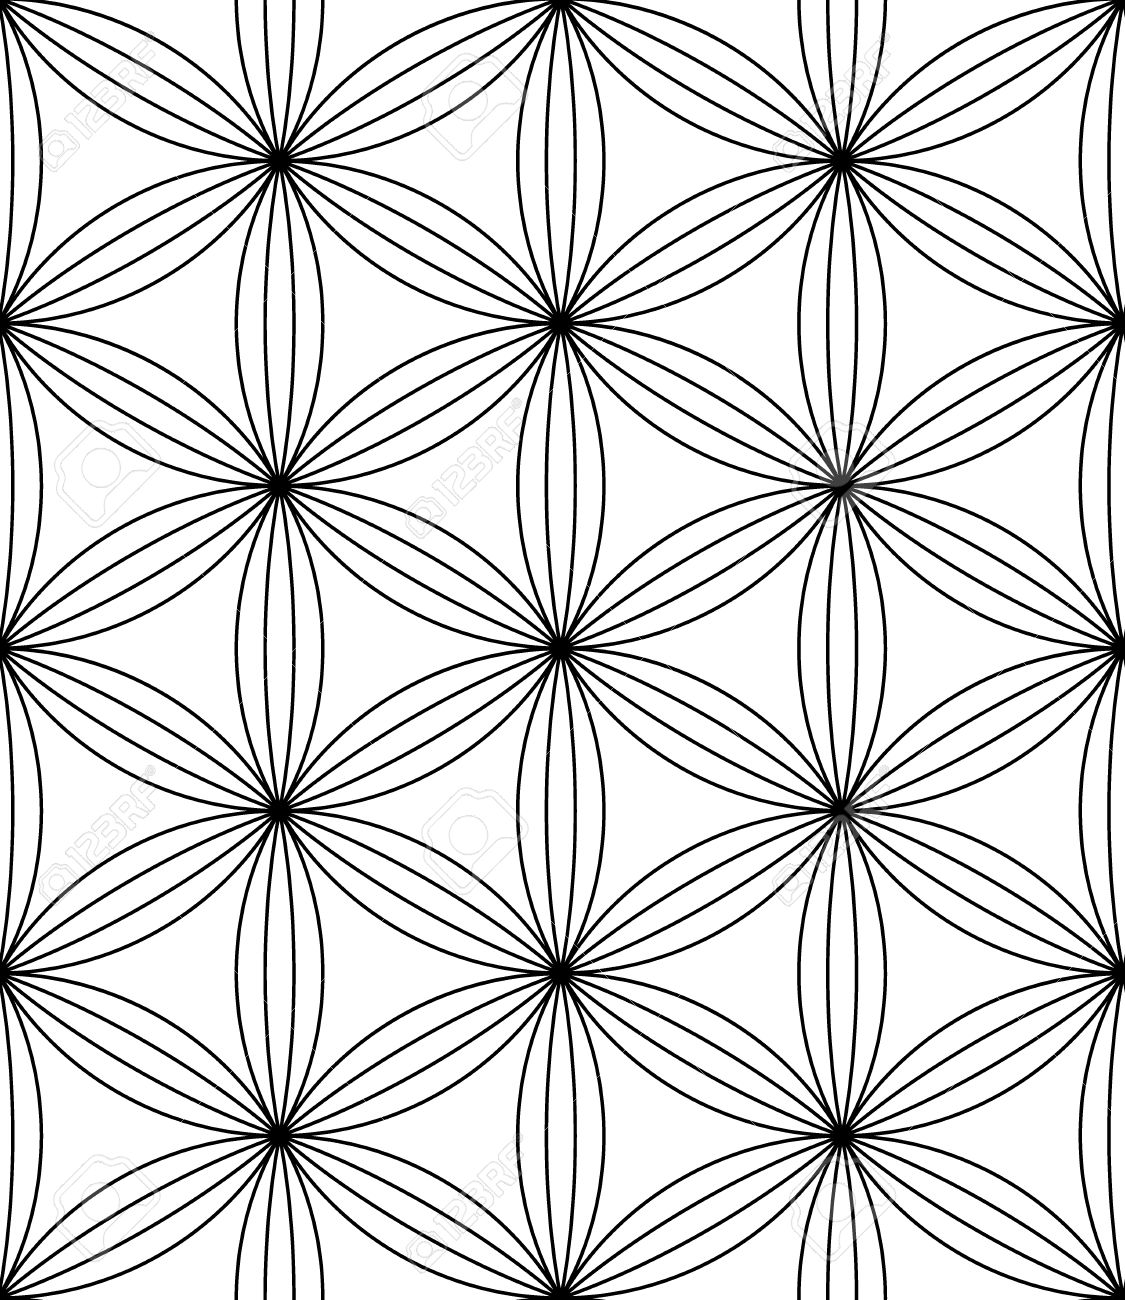 black and white textile print stylish background abstract texture monochrome fashion design sacred geometry bed sheets or pillow pattern